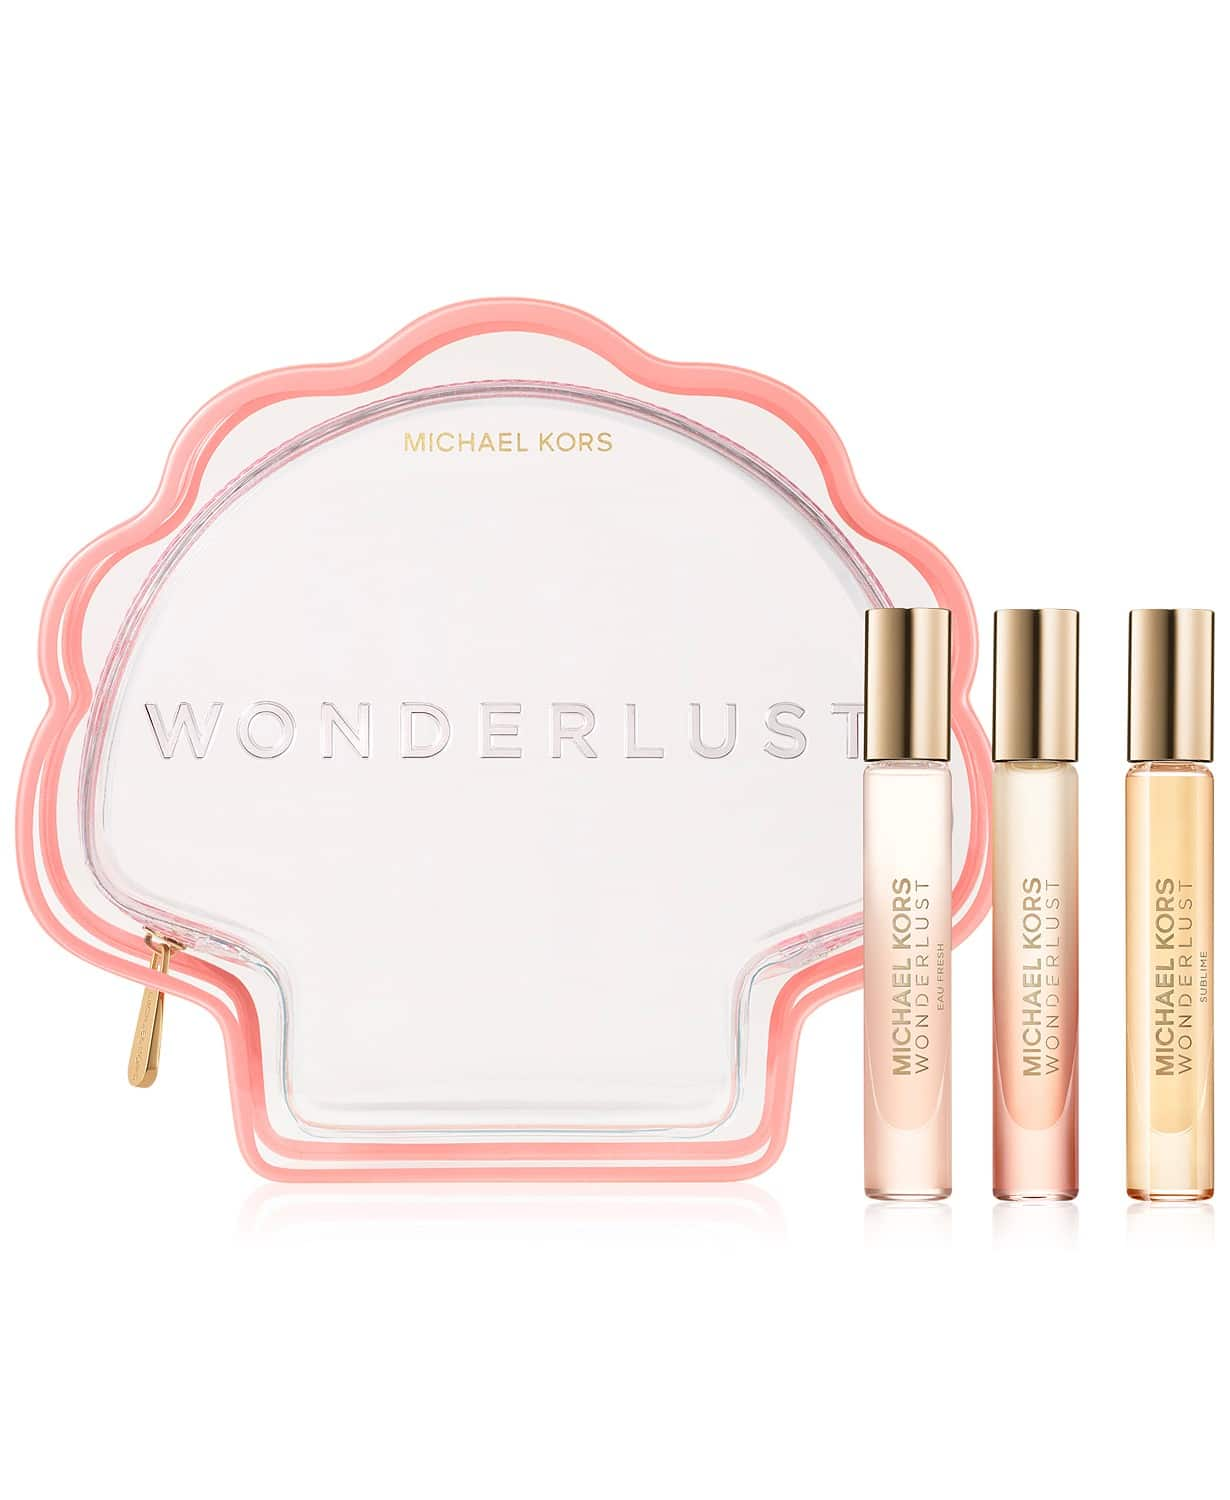 Explore a fresh scent for spring. This Wonderlust Discovery Set features the original Wonderlust Eau de Parfum, Wonderlust Eau Fresh Eau de Toilette, and the new Wonderlust Sublime Eau de Parfum, all presented in a whimsical shell pouch.